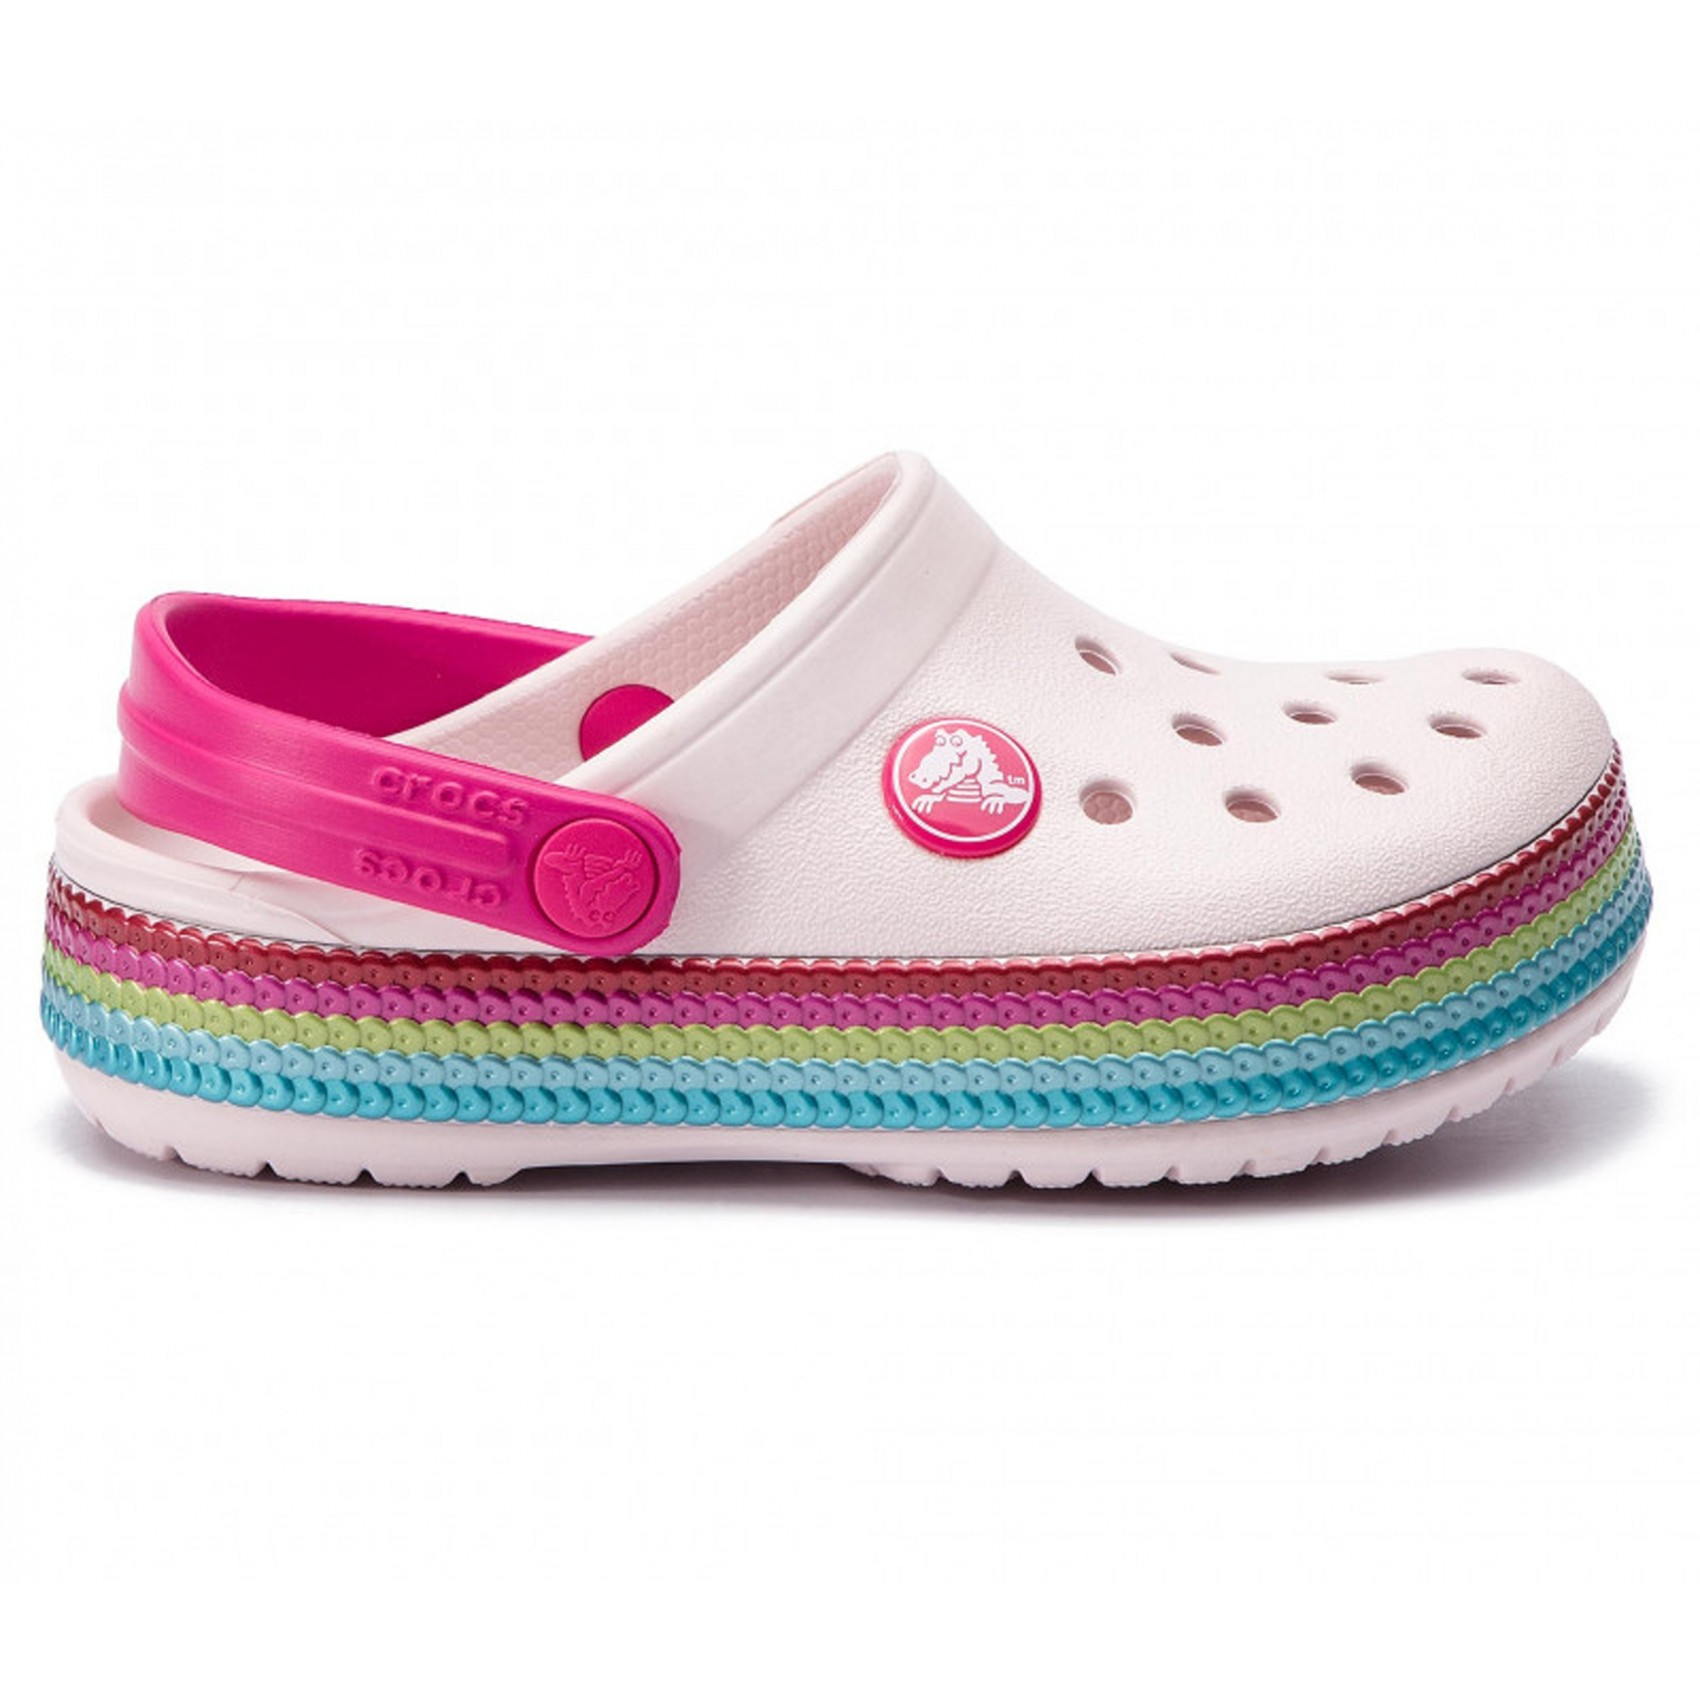 9163dcdcb Crocband Sequin Band Clog from Princesse Ilou